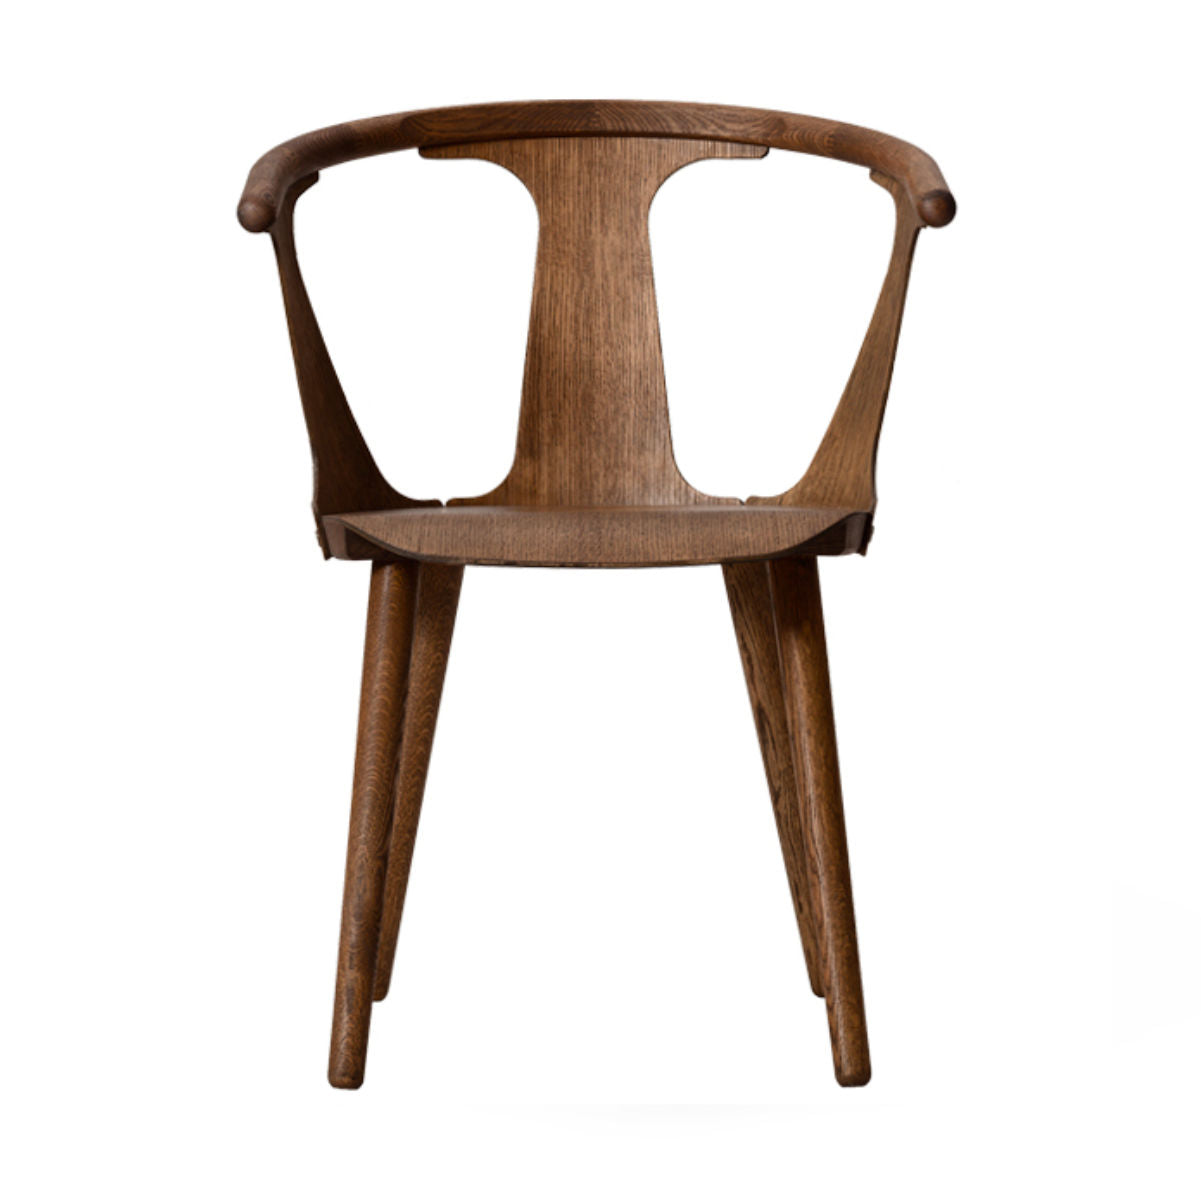 &Tradition In Between SK1 chair, smoked oiled oak